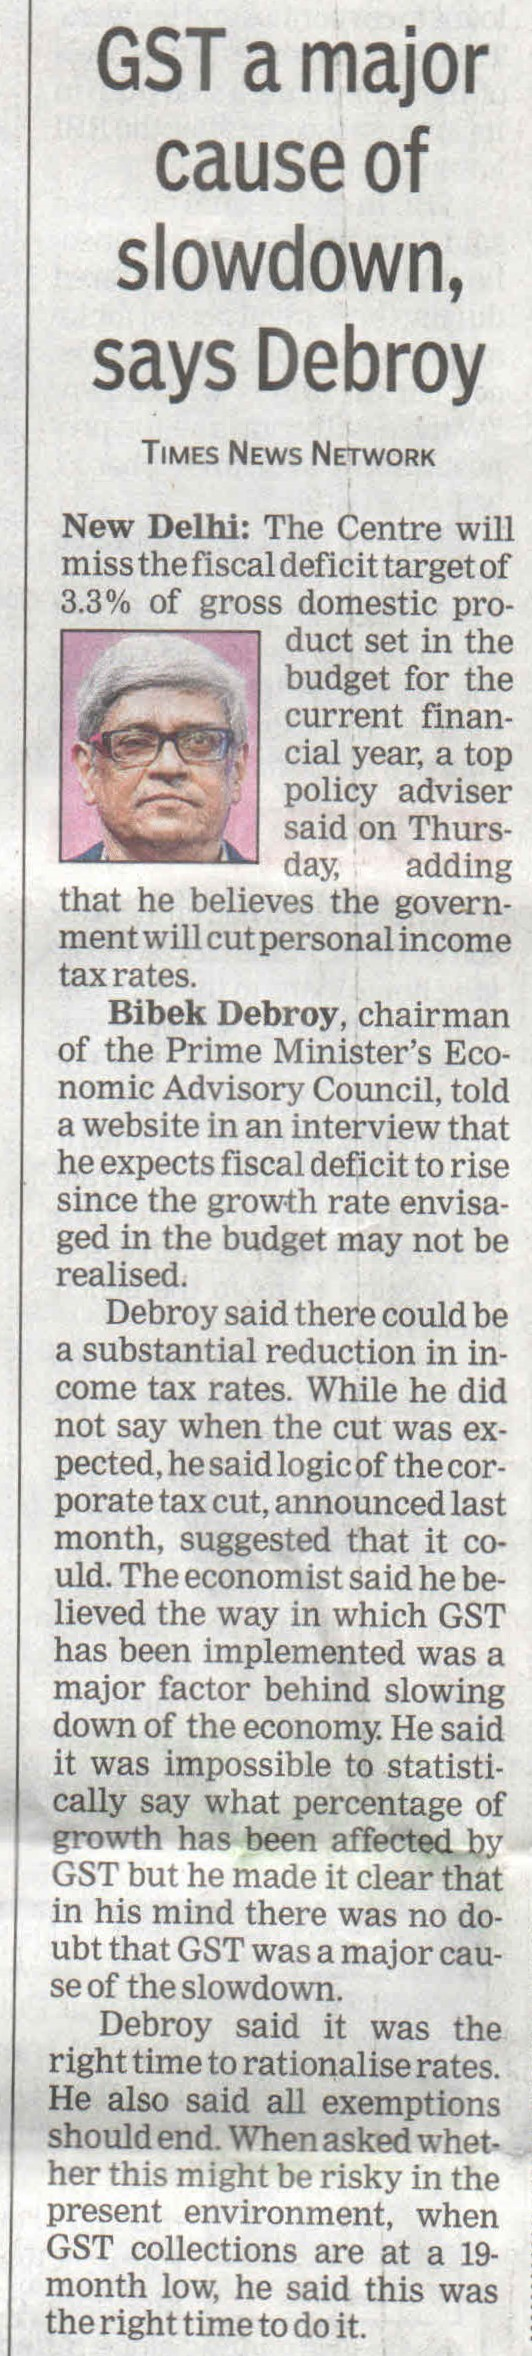 GST a major cause of slowdown, says debroy